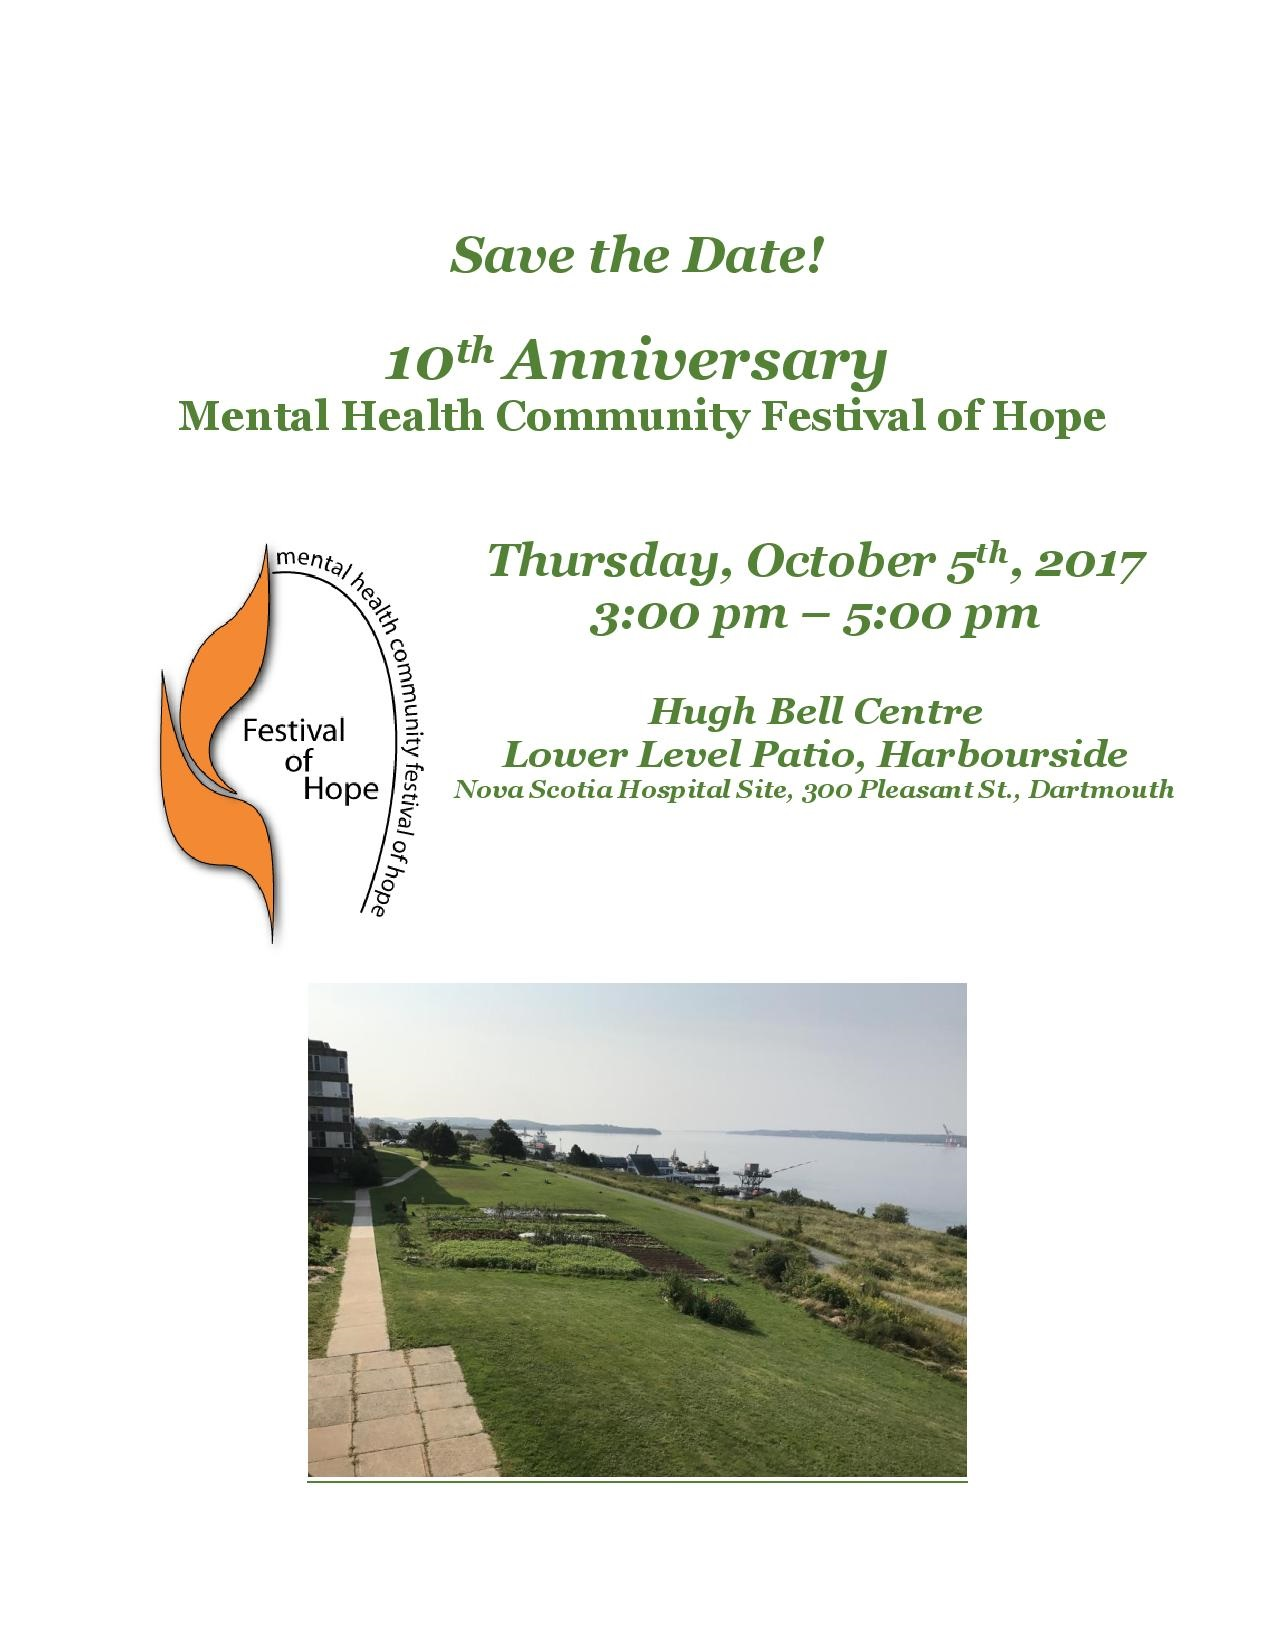 Save the Date Festival of Hope 10th Anniversary, October 5th, 2017-page-001.jpg